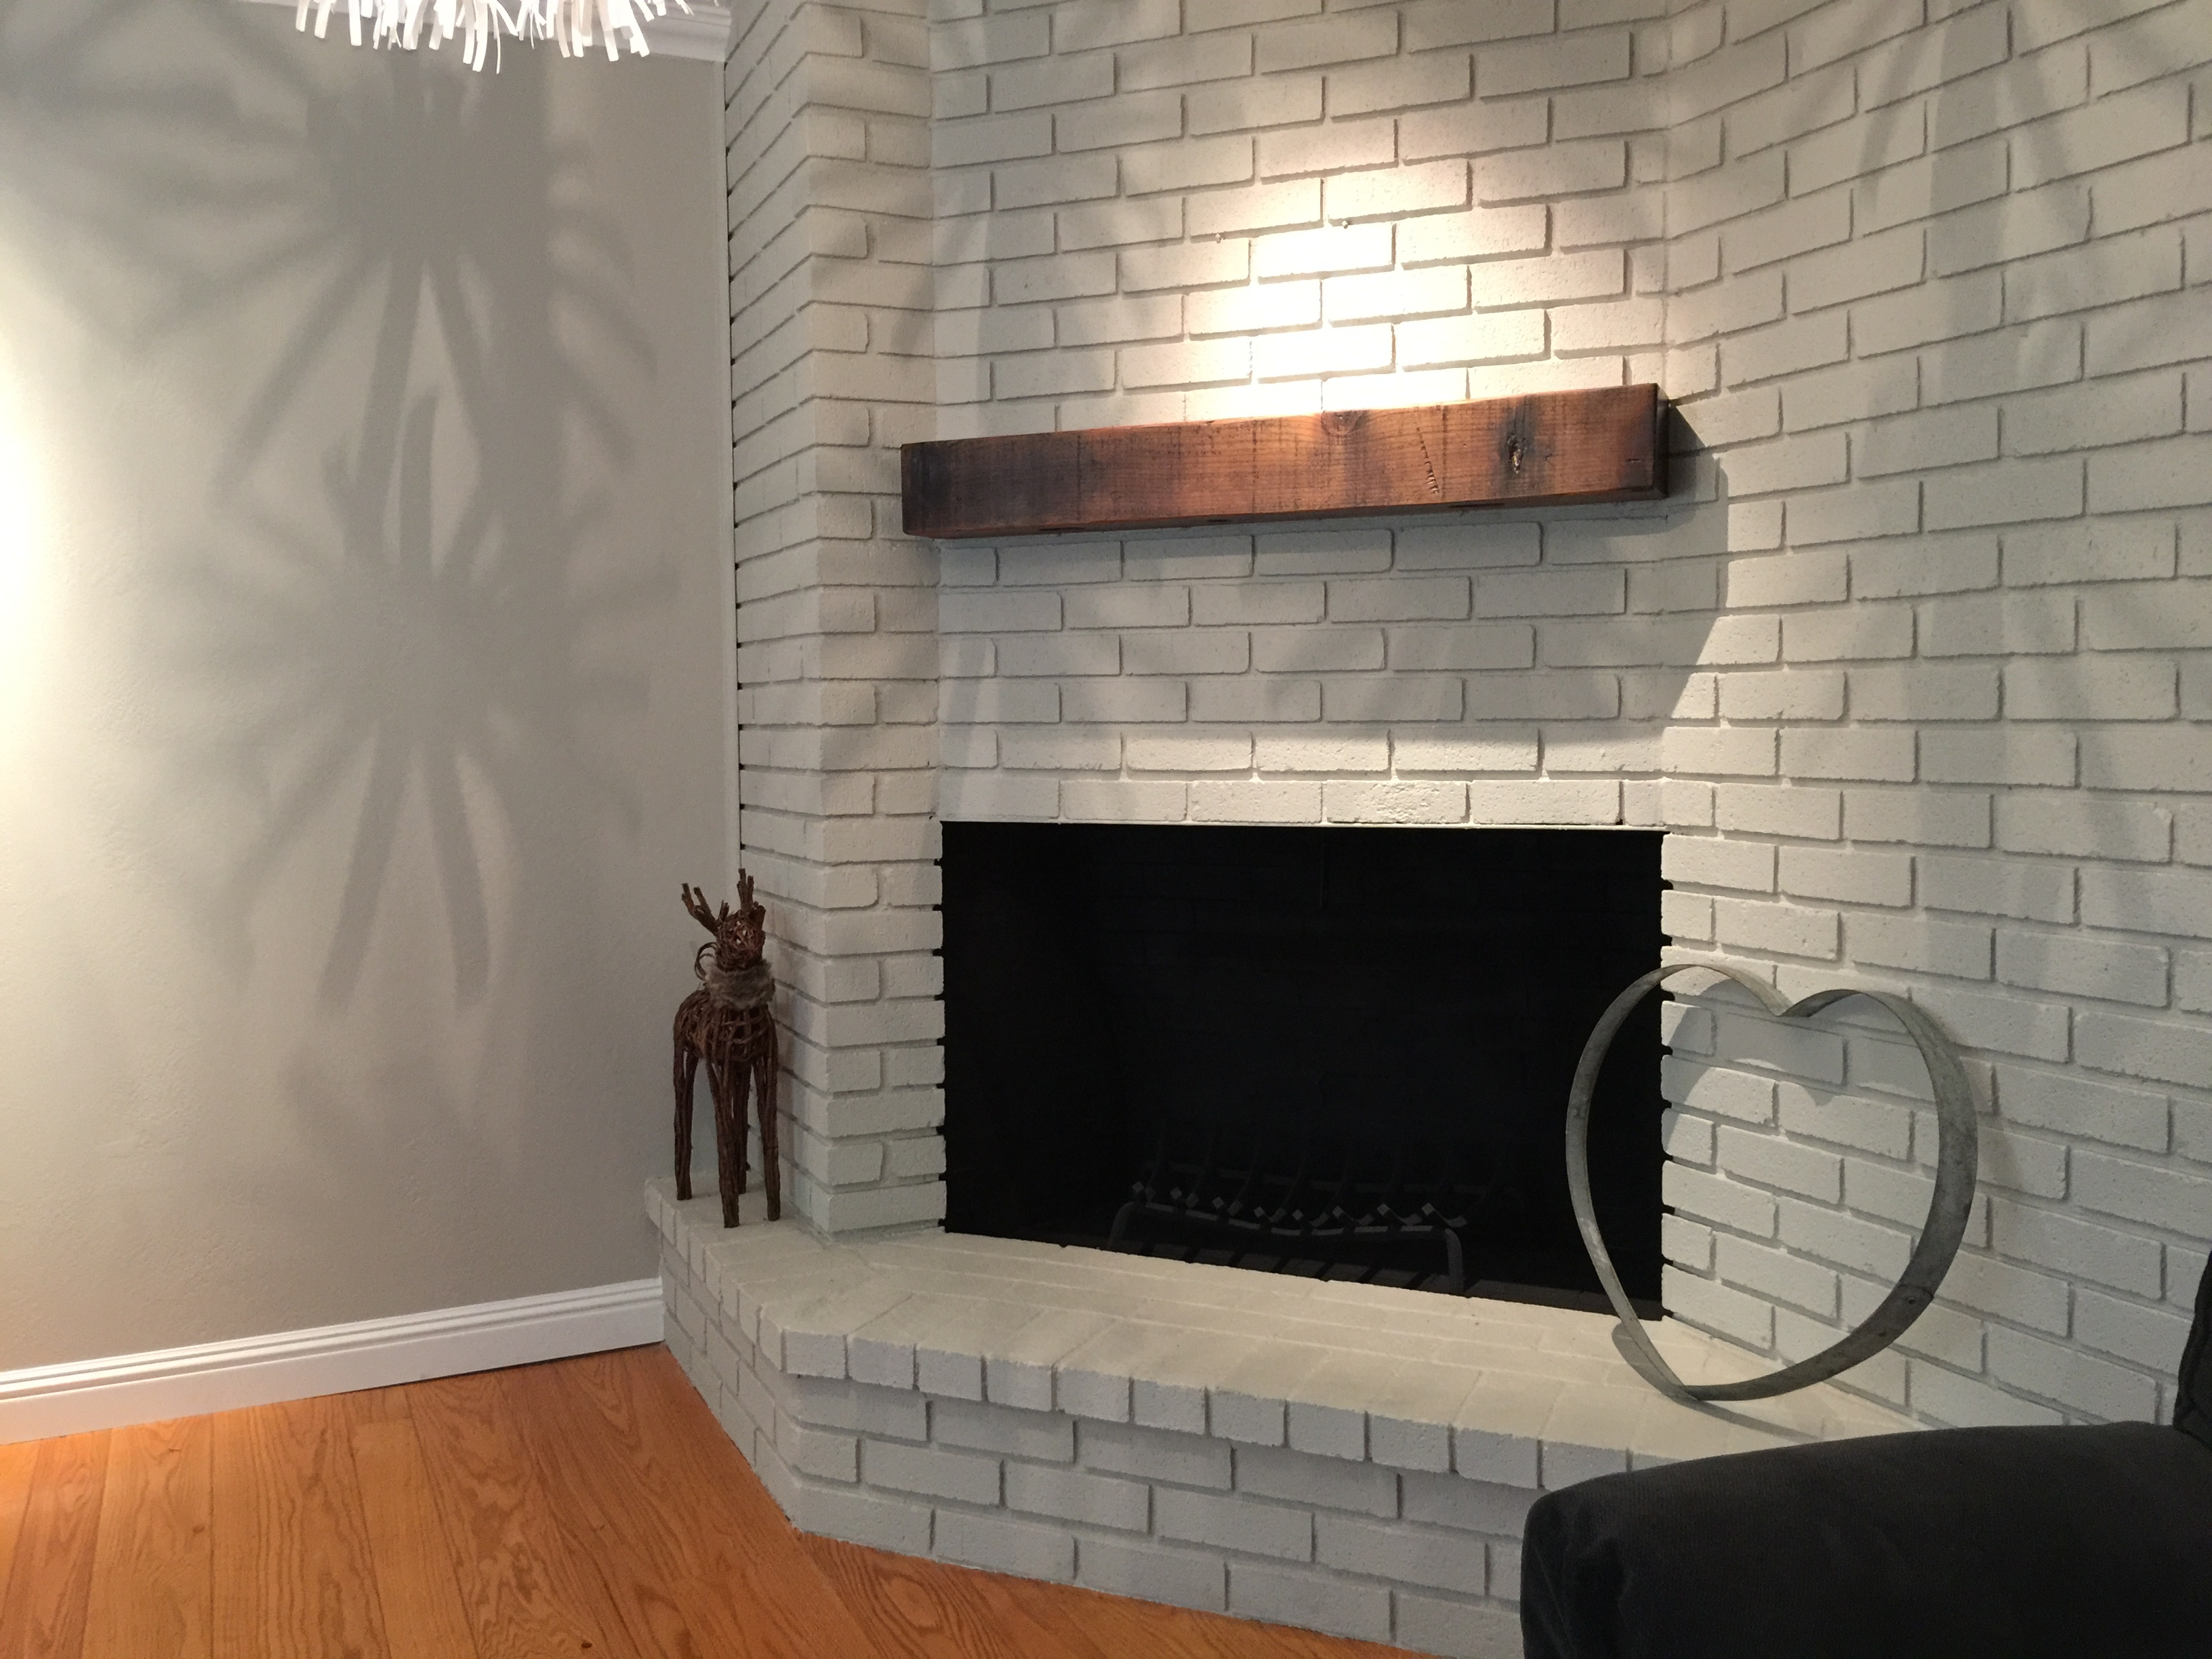 Cheap Fireplace Mantels | Lowes Fireplace Mantel | Lowes Mantels for Fireplaces